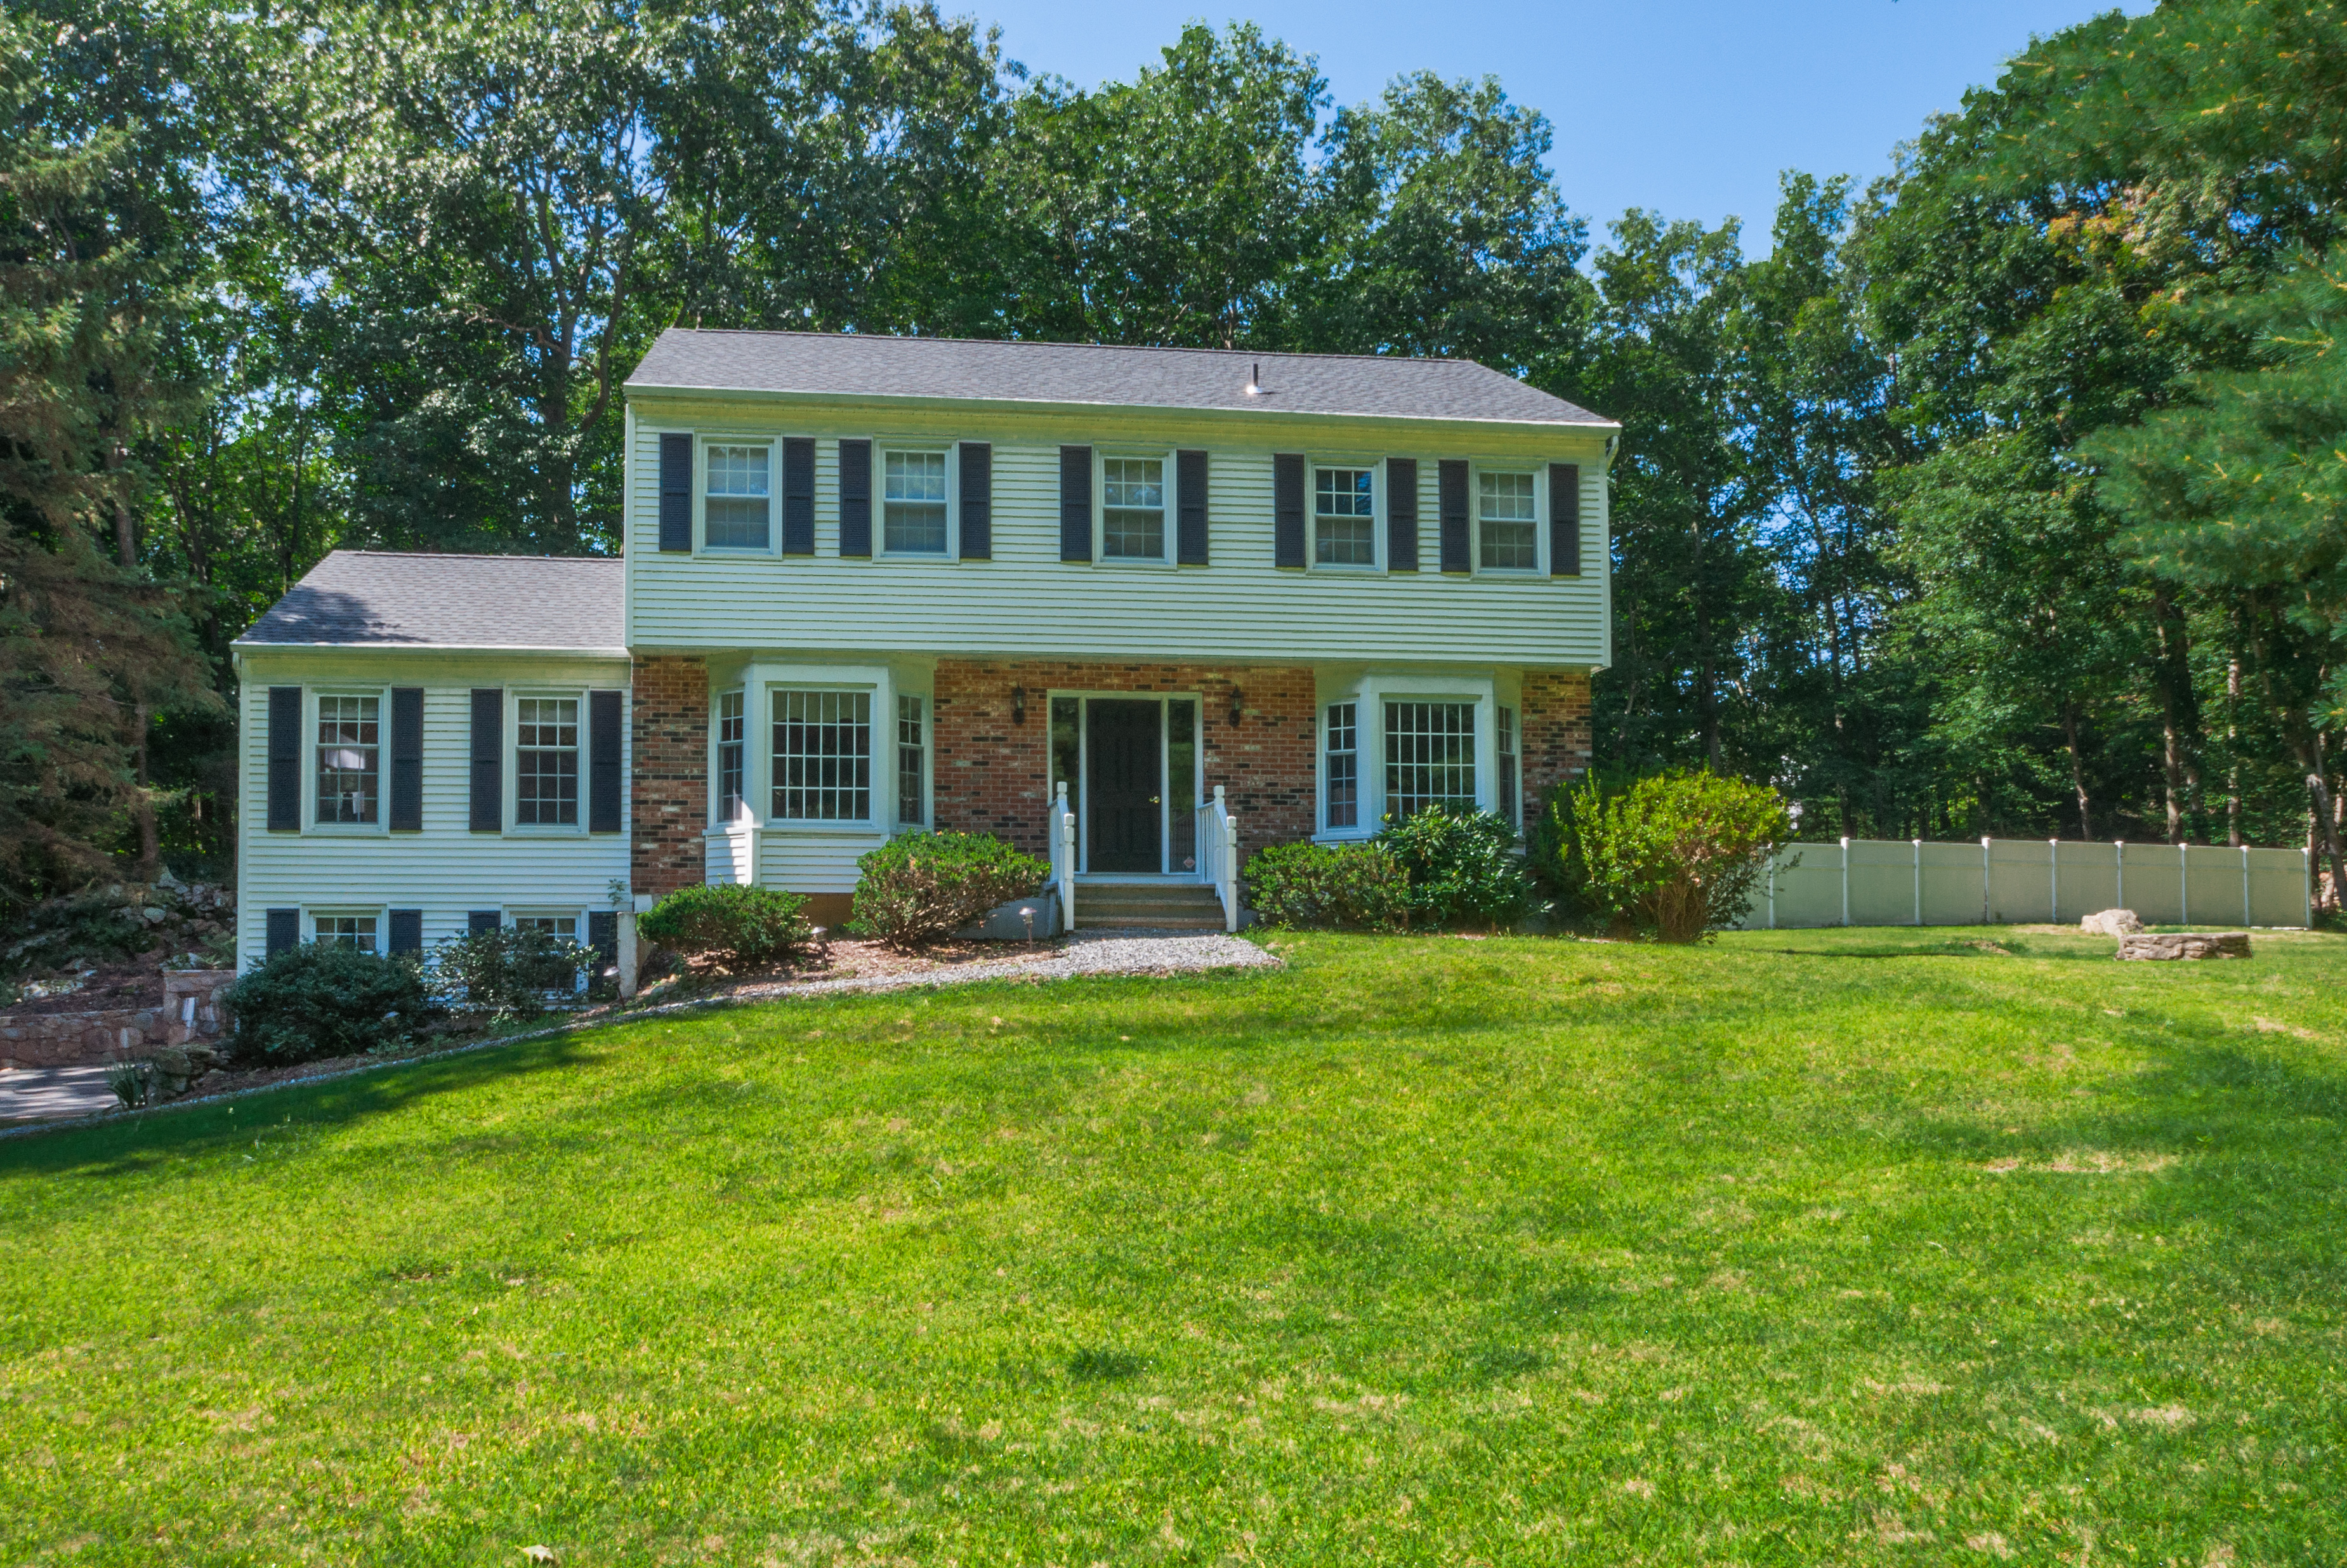 Single Family Home for Sale at Classic Colonial 10 Round Hill Drive Danbury, Connecticut 06811 United States